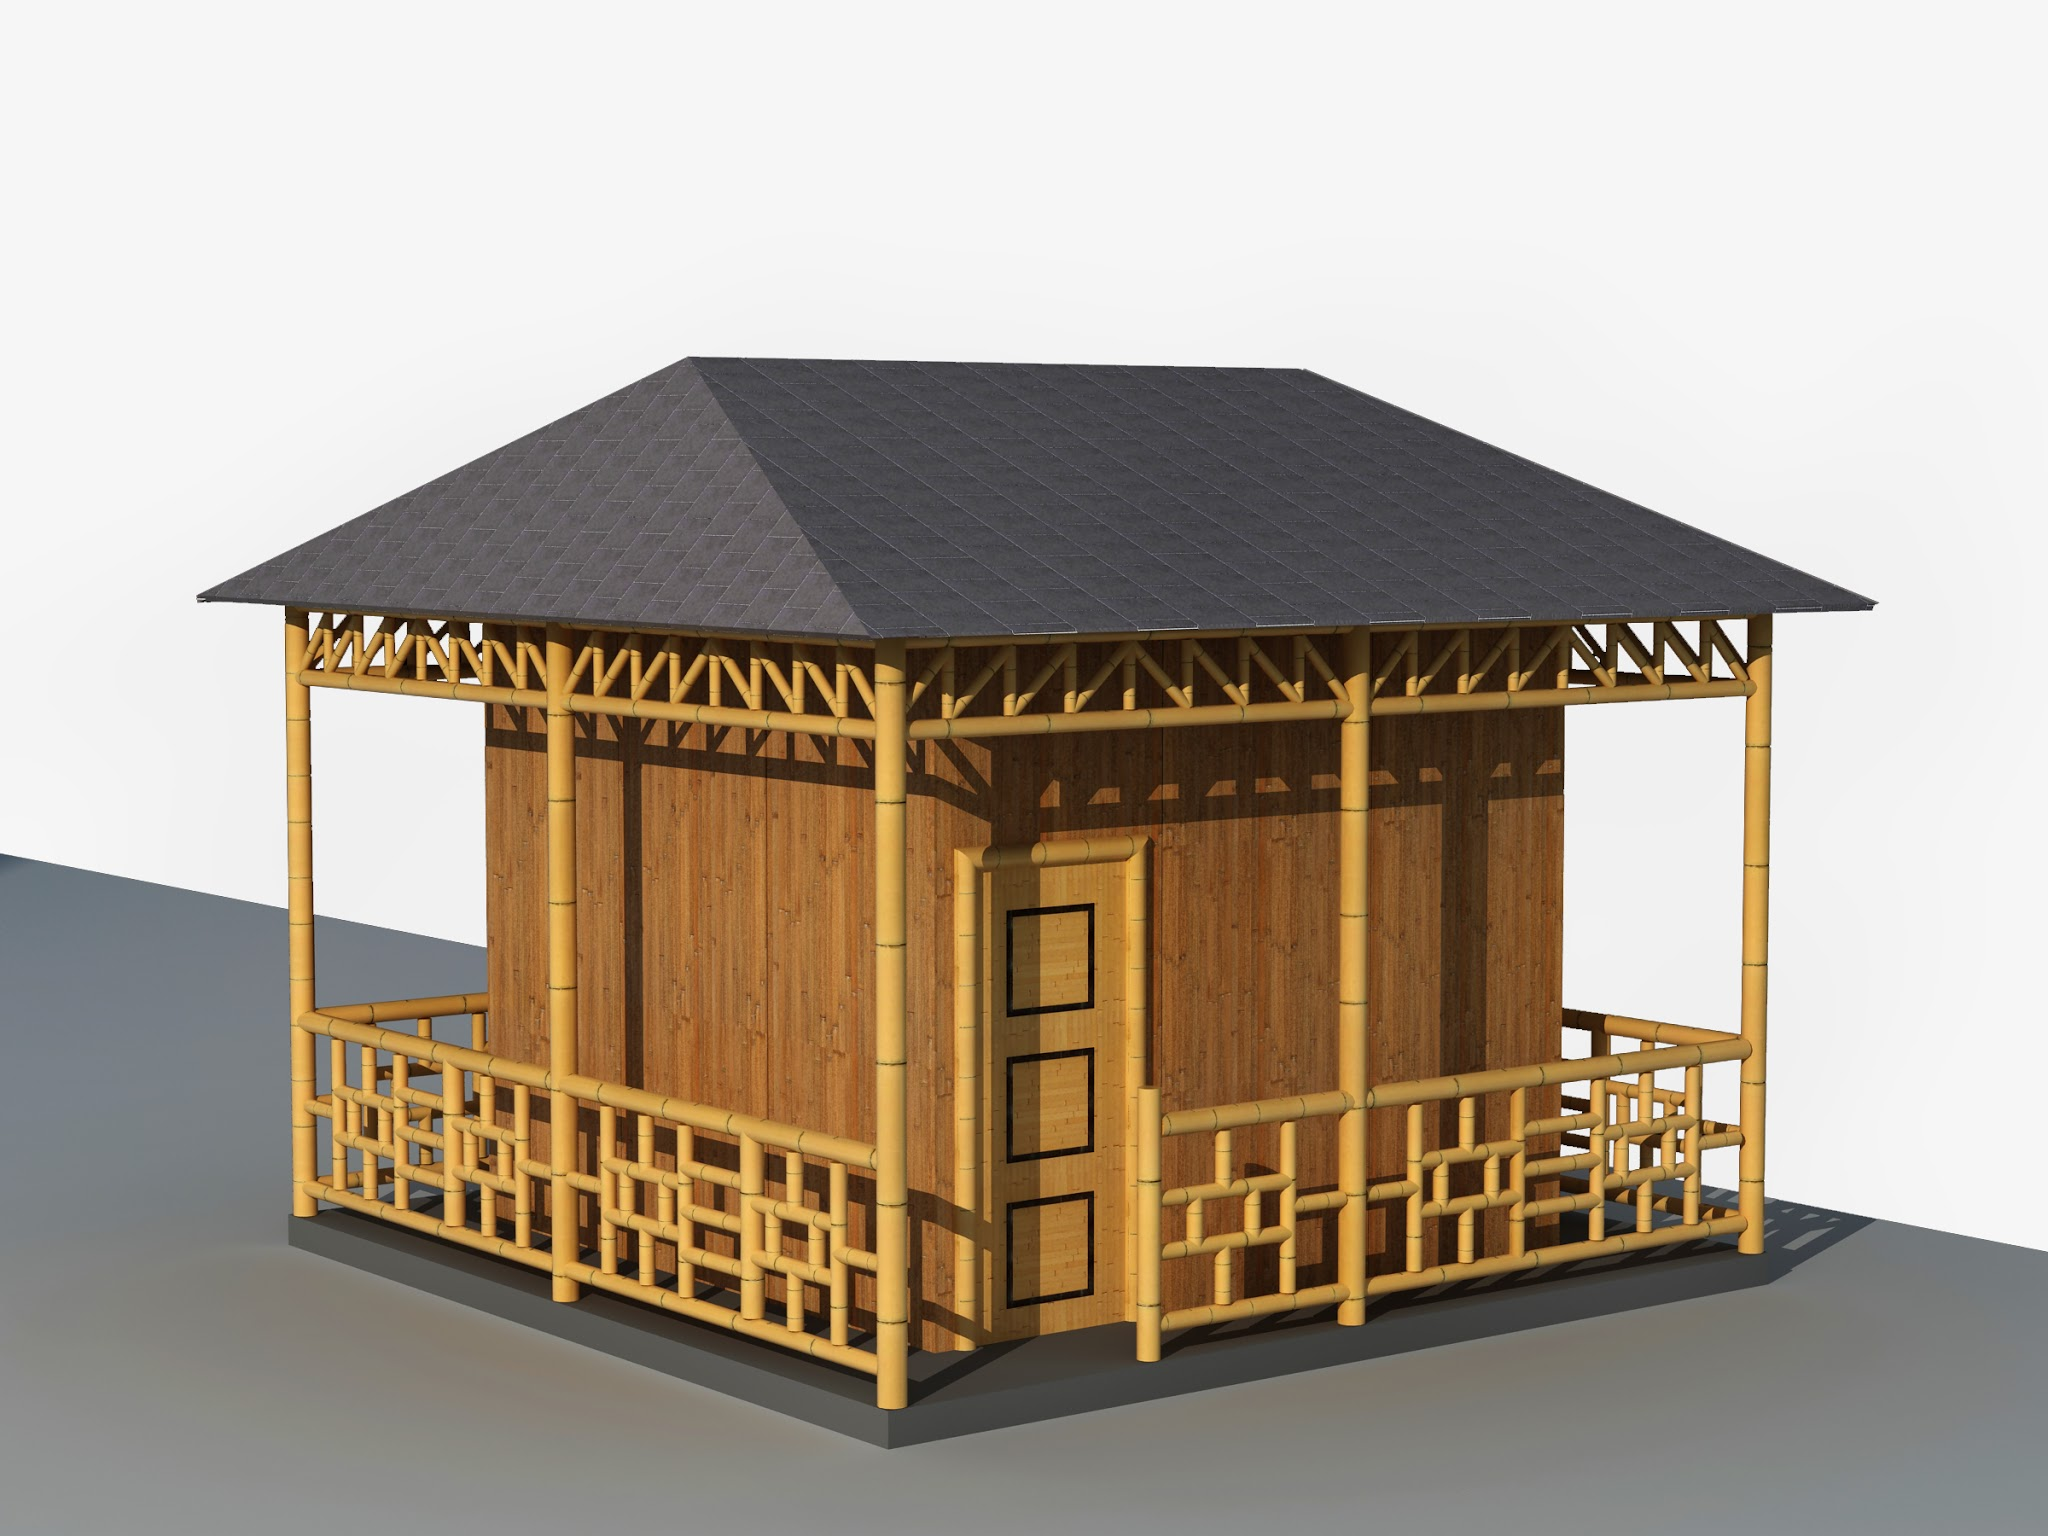 The usual problems of nipa houses are the roofings storms and typhoons could easily break down and take off the roof but this modern bamboo house adapted